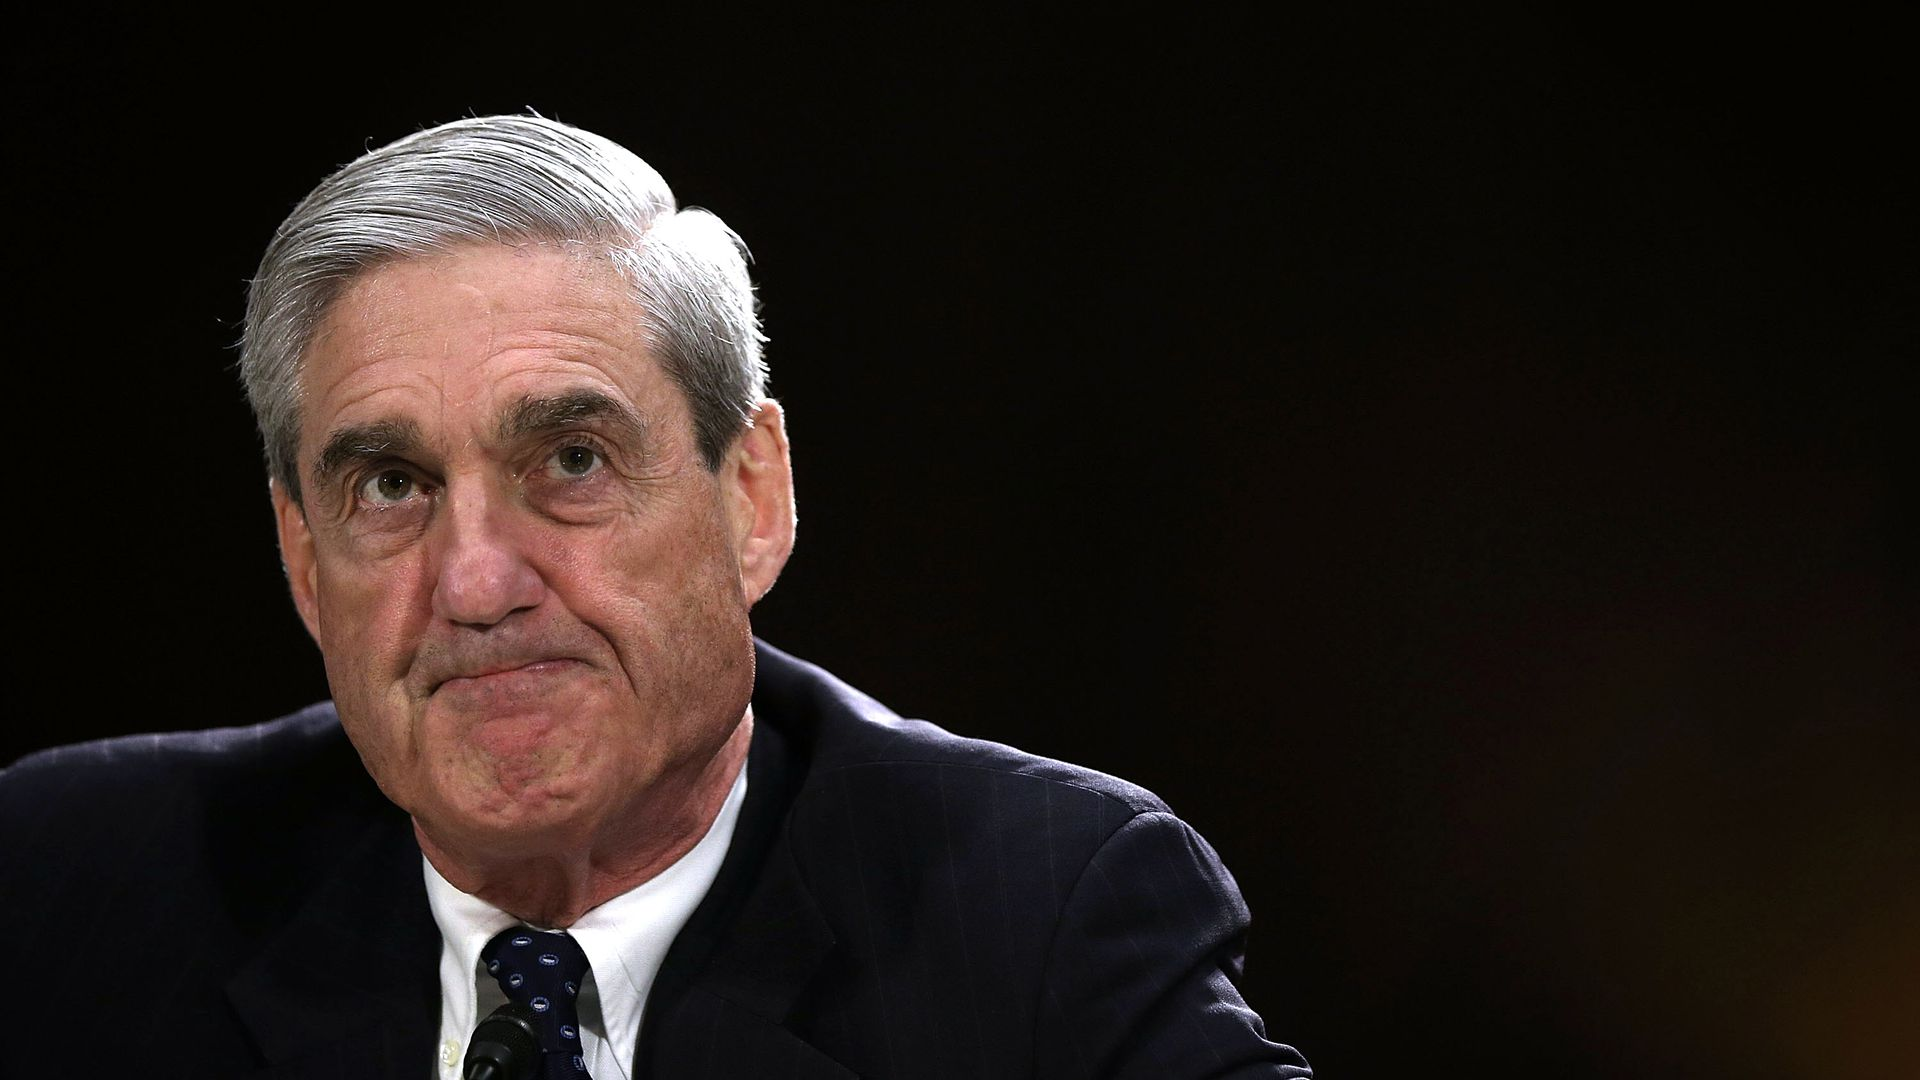 Bob Mueller before a black background grimaces.